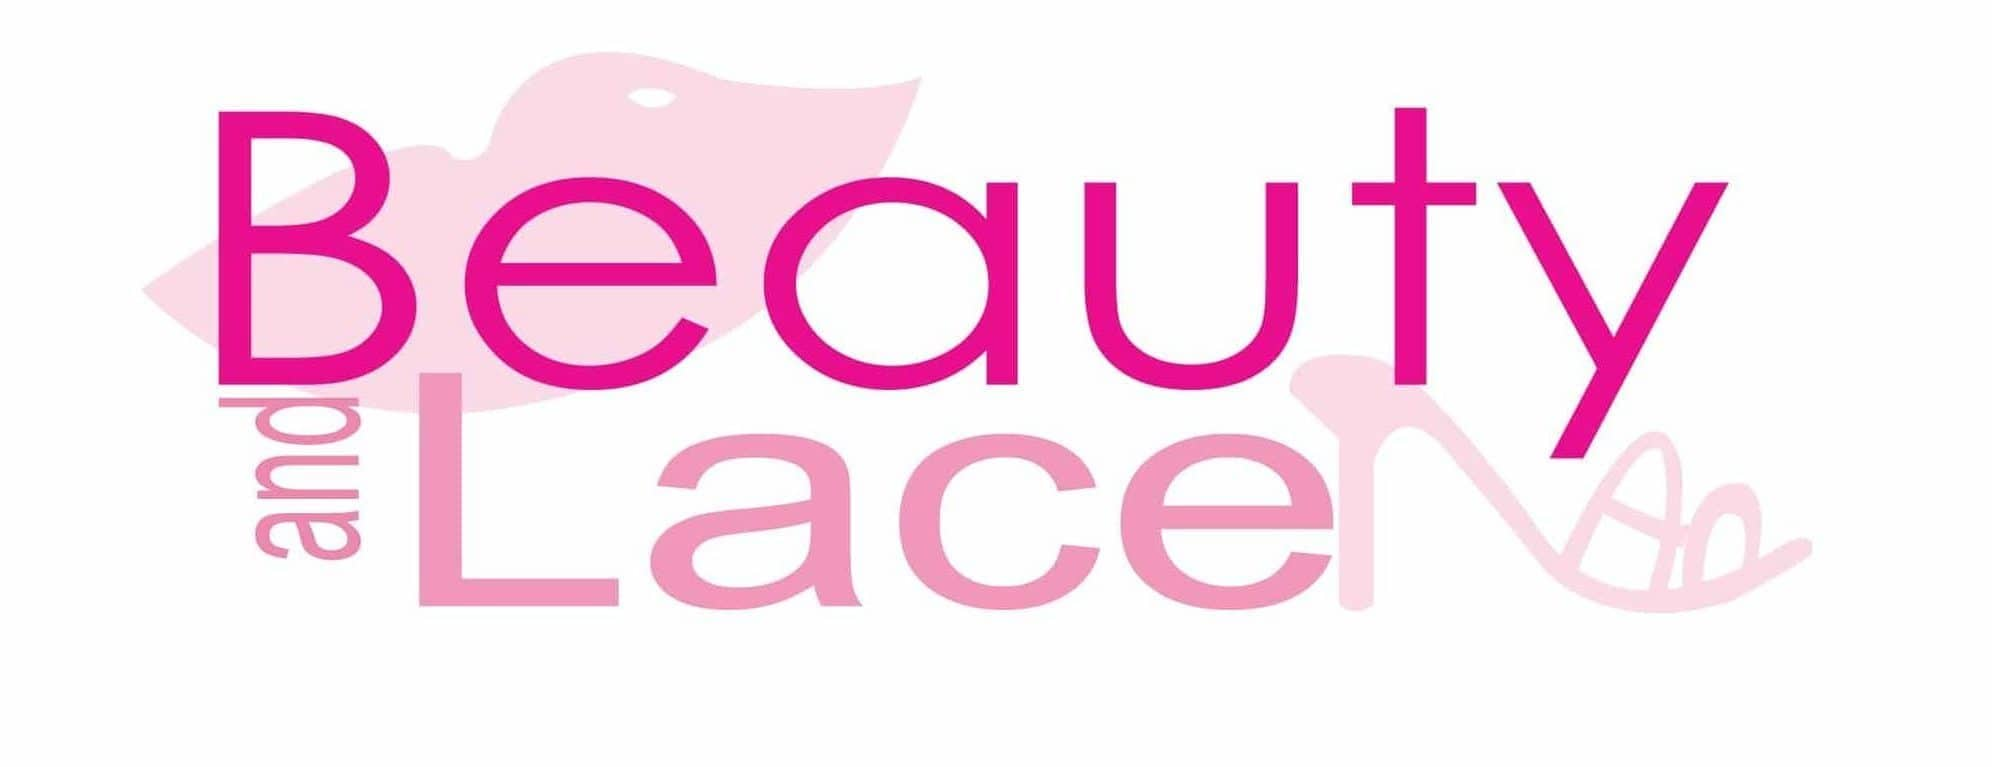 Family – Beauty and Lace Online Magazine